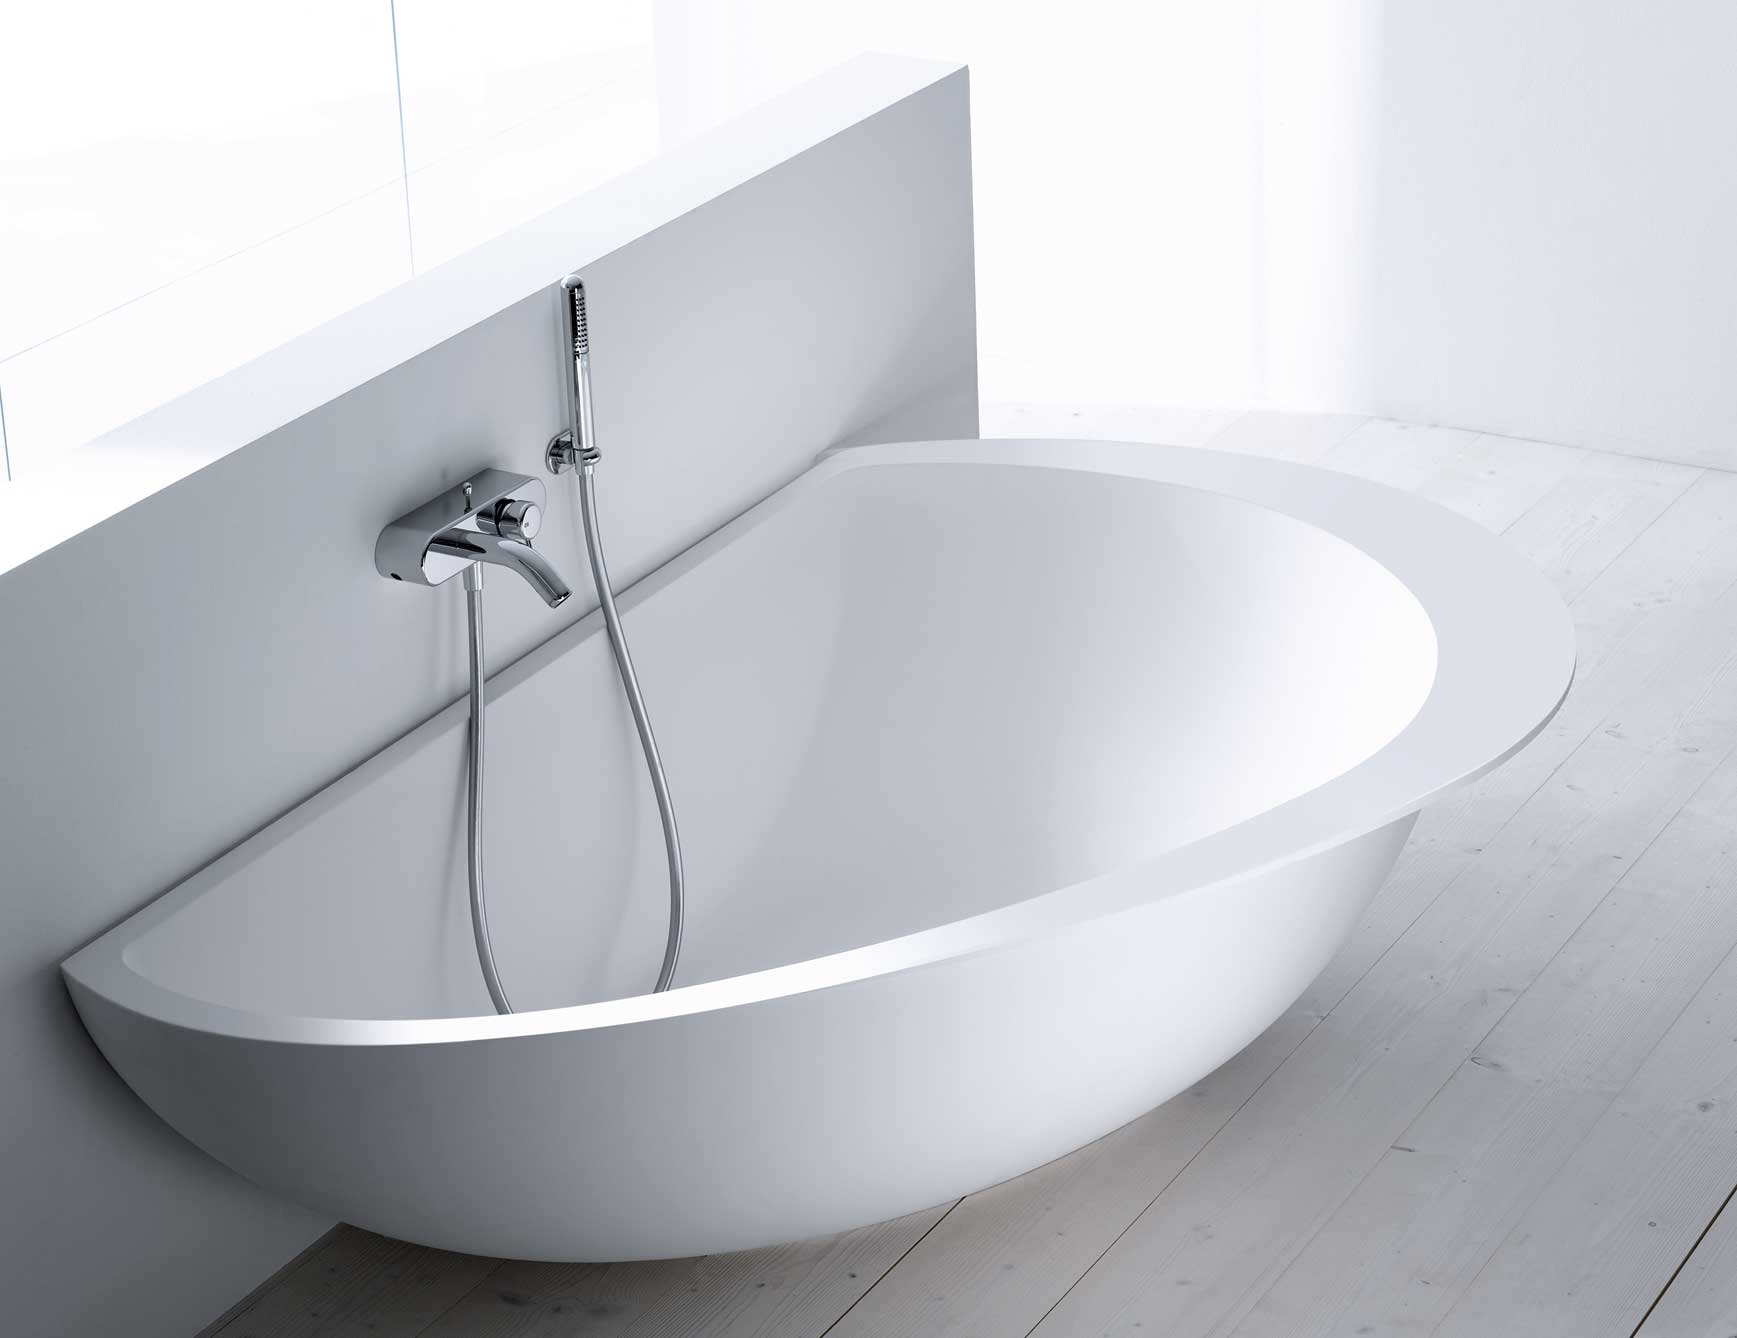 Nella Vetrina Vov Mastella Vanity Party Luxury Italian Bathtub